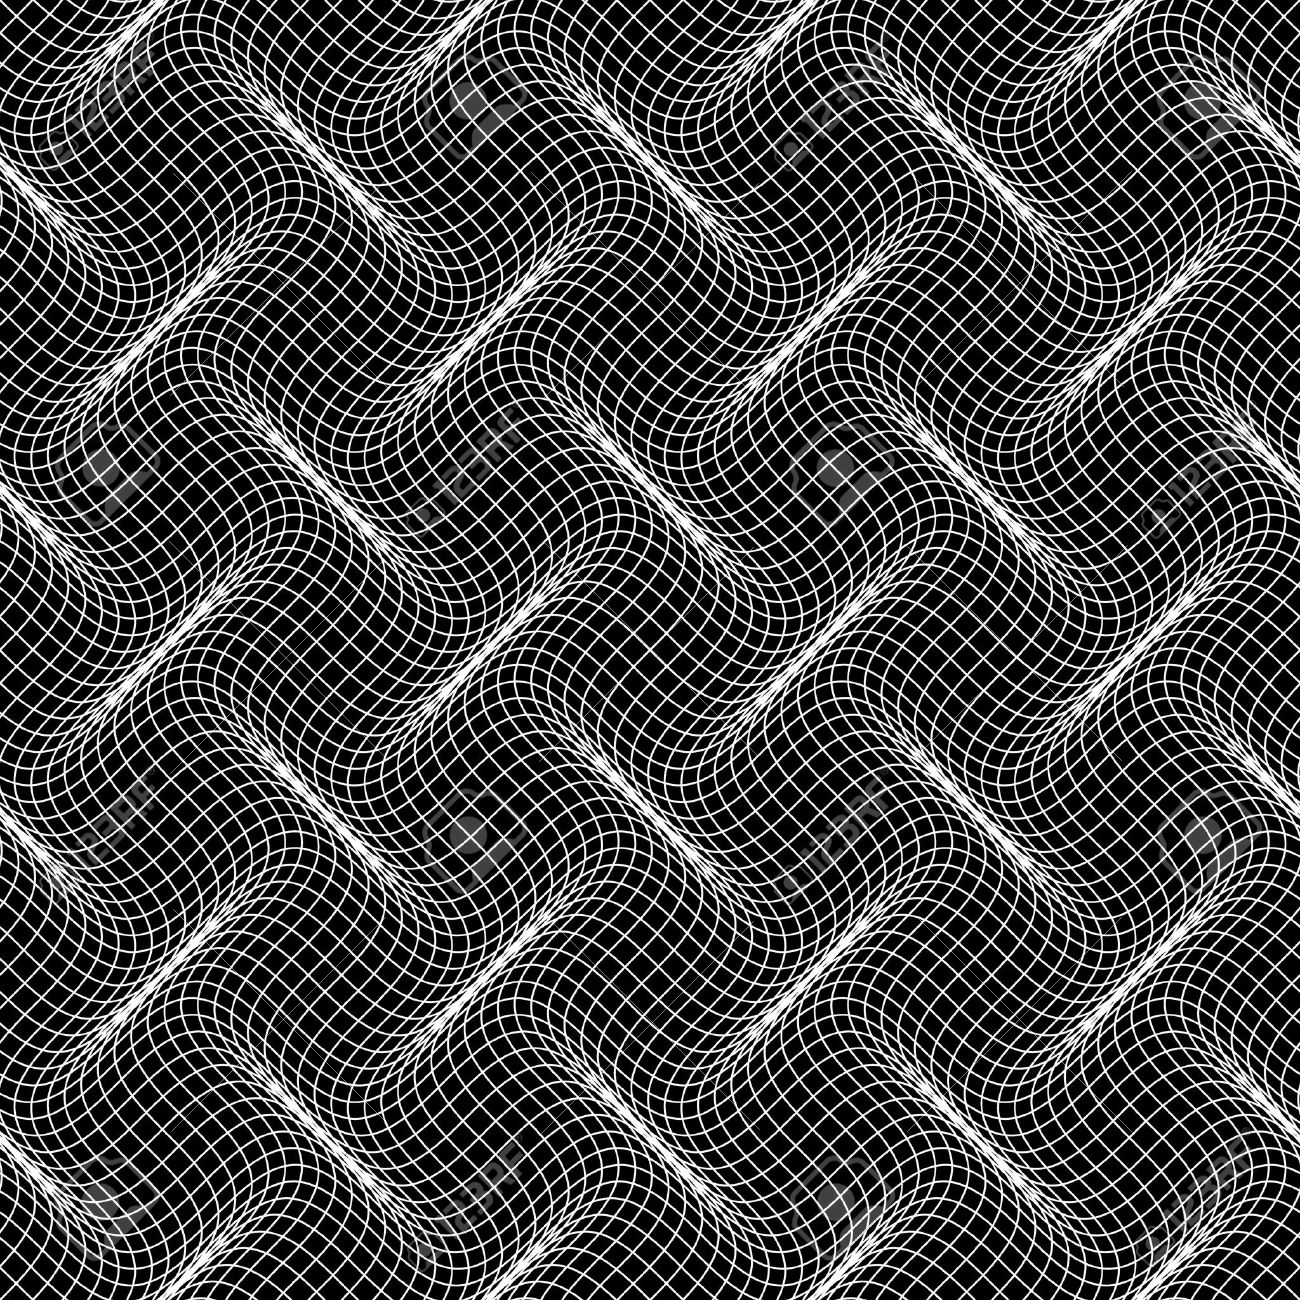 Grating Grid Pattern Background